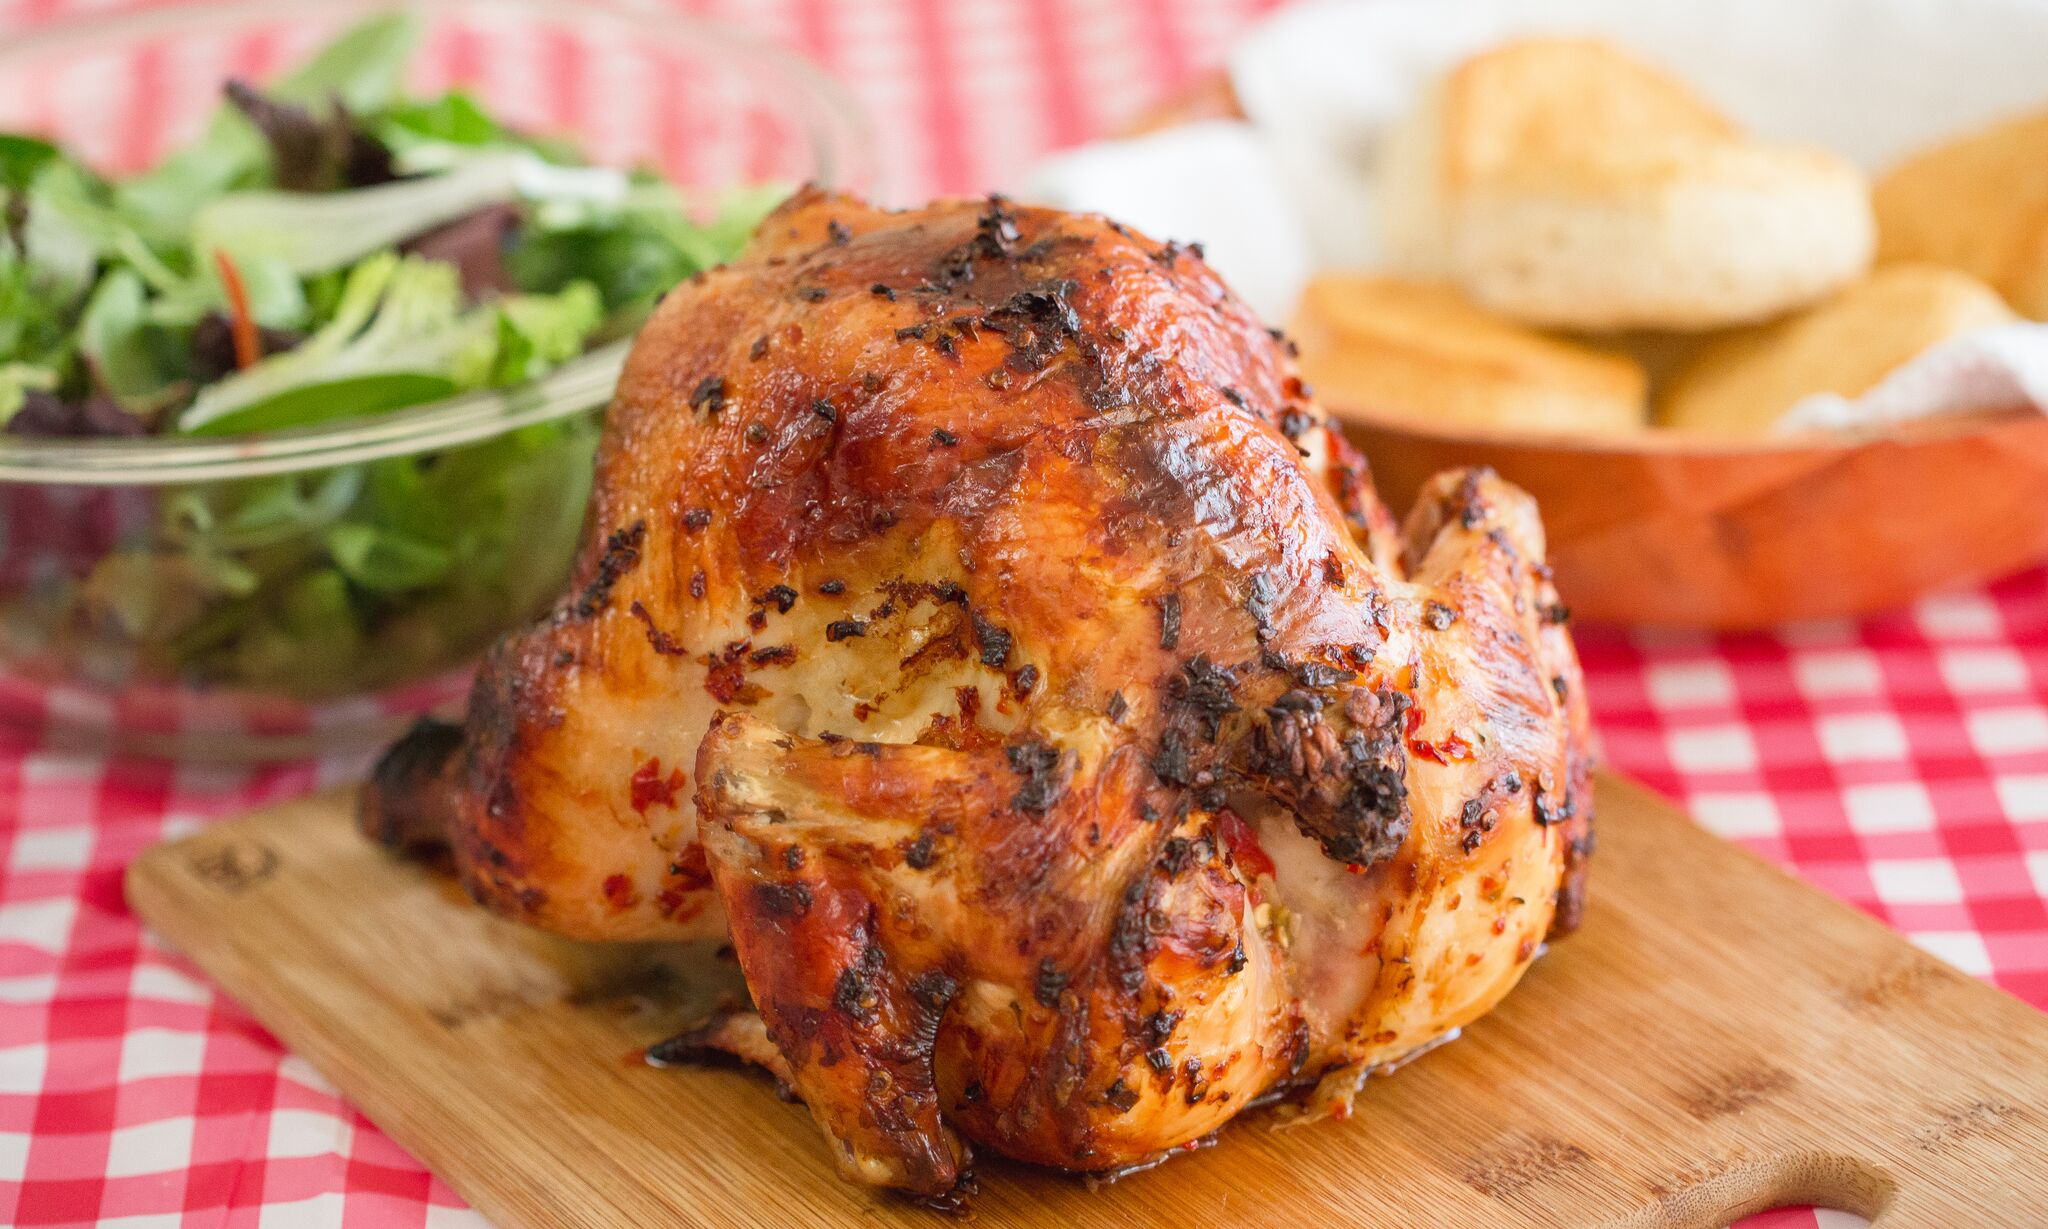 Perfectly grilled beer can chicken is a creative dinner that doesn't take much effort and is super delicious!